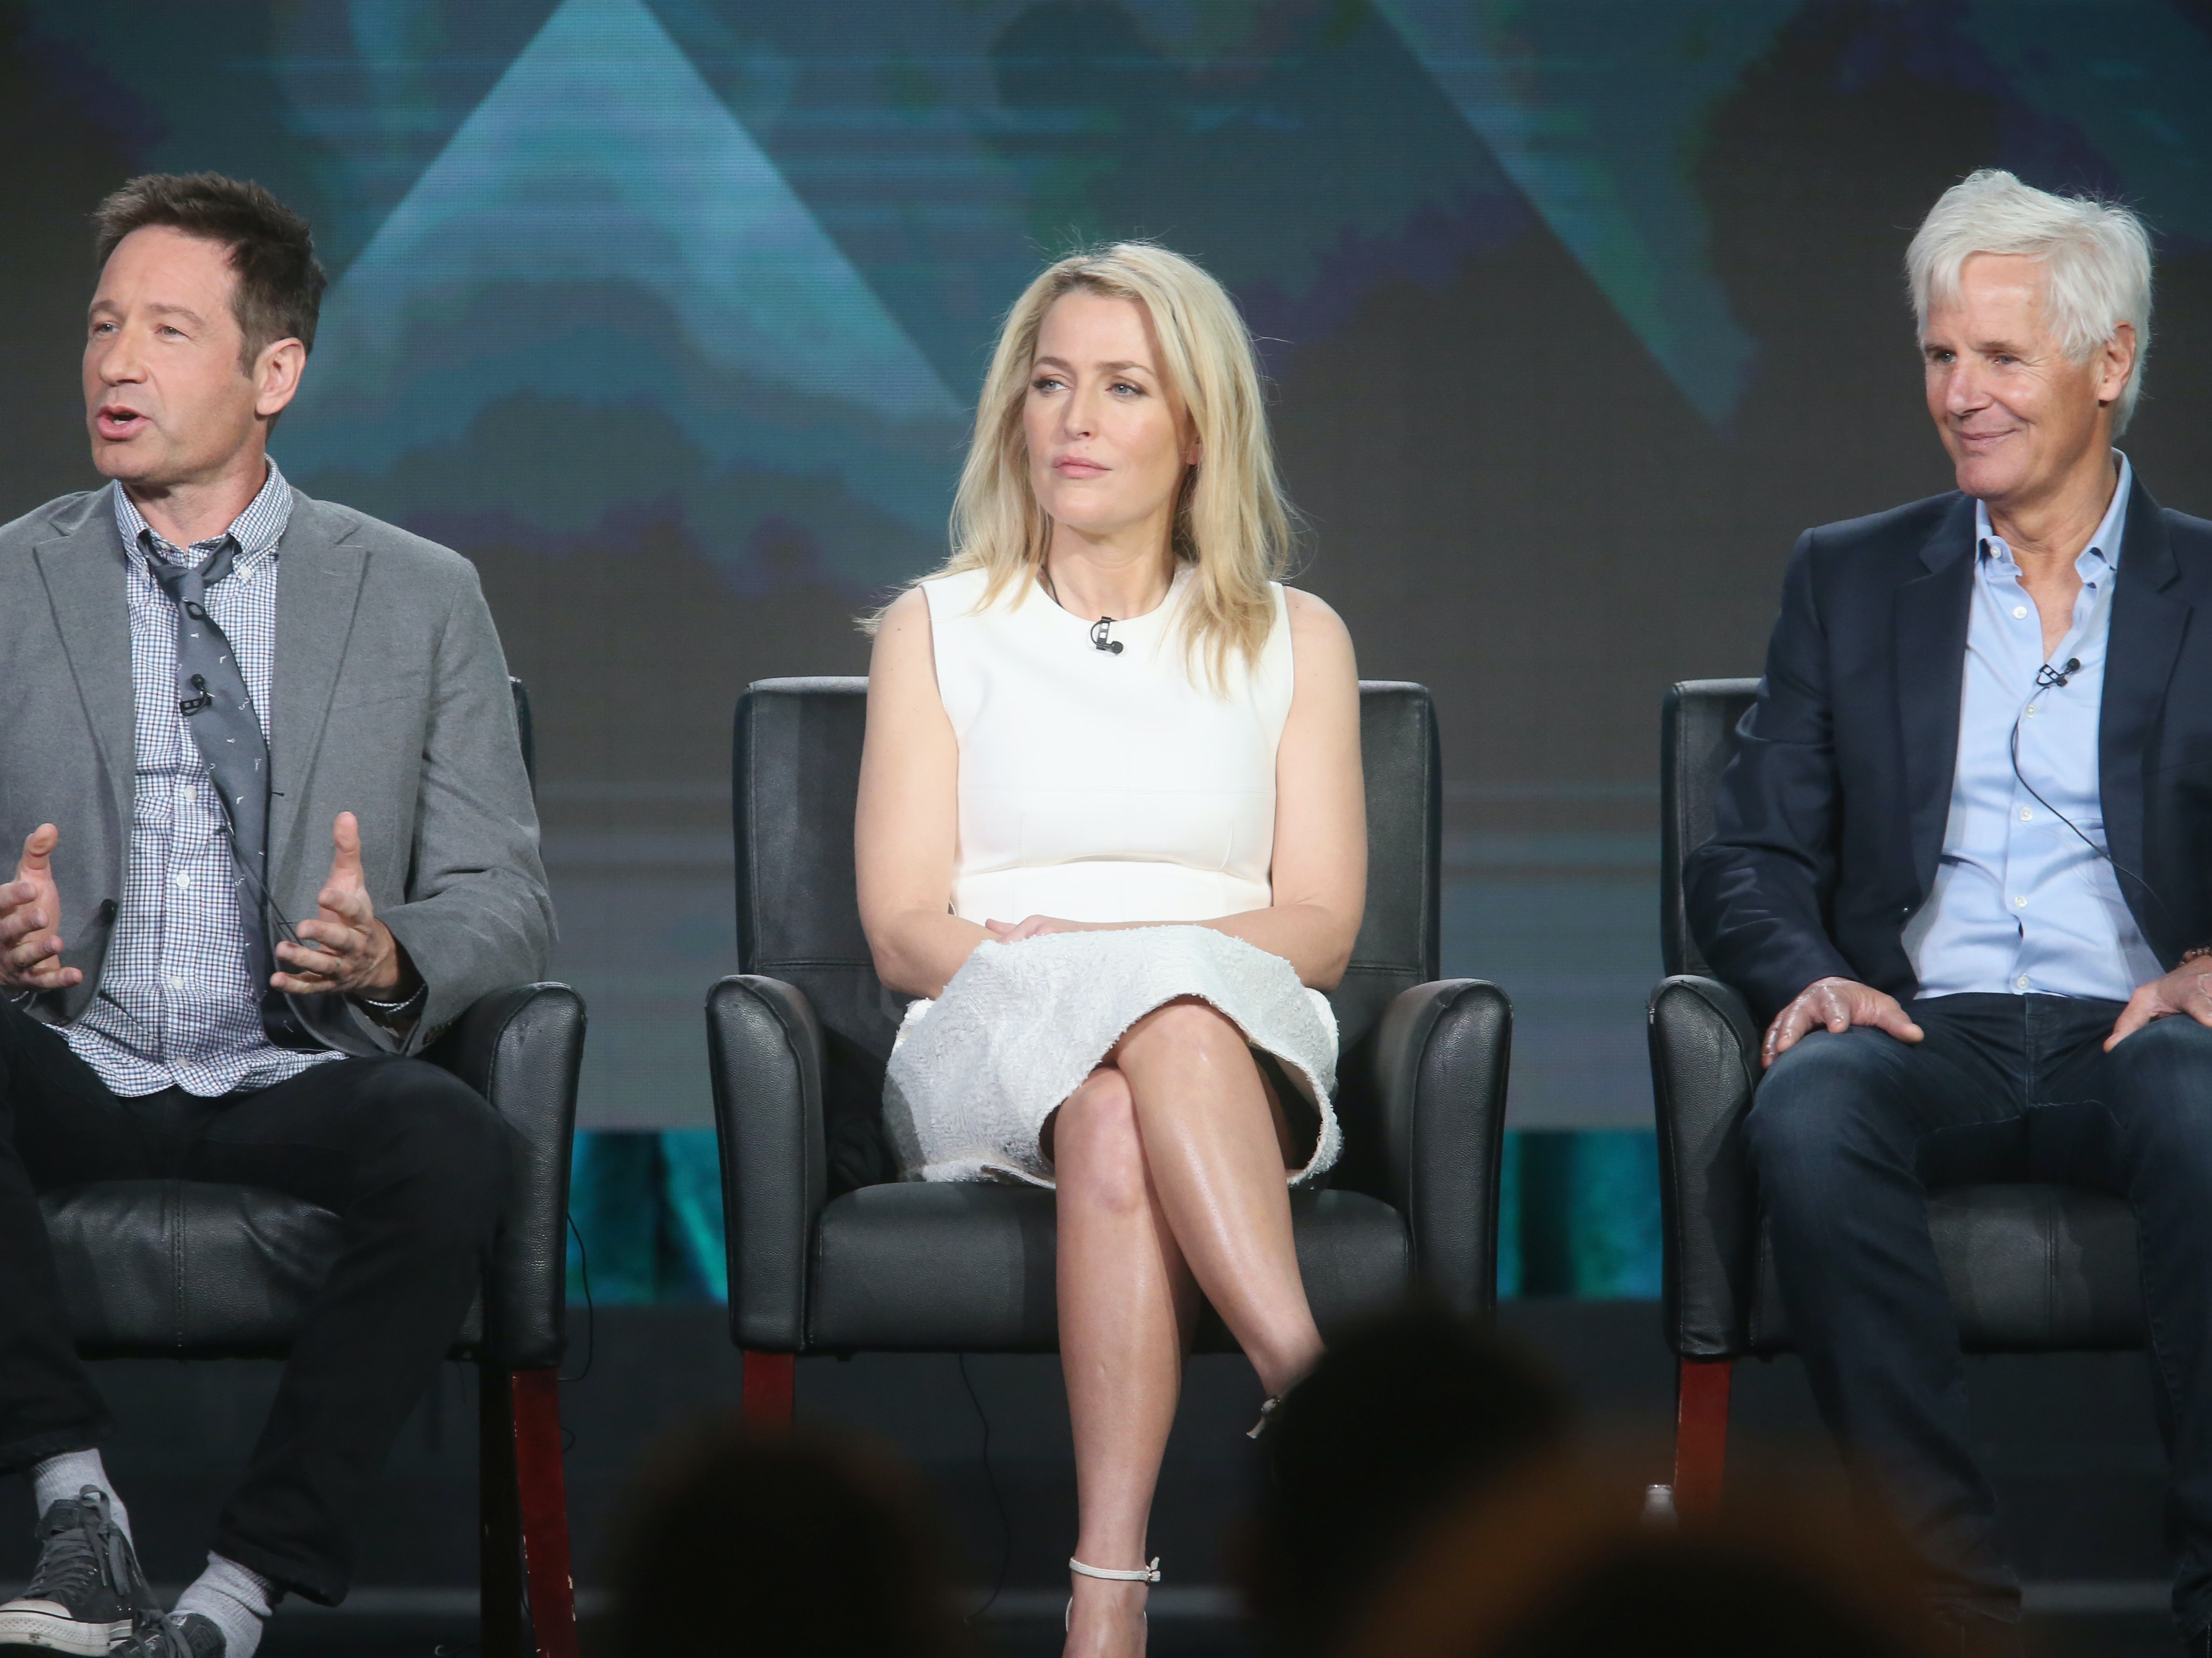 PASADENA, CA - JANUARY 15:  Actors Joel McHale, David Duchovny and Gillian Anderson speak onstage during 'The X-Files' panel discussion at the FOX portion of the 2015 Winter TCA Tour at the Langham Huntington Hotel on January 15, 2016 in Pasadena, California  (Photo by Frederick M. Brown/Getty Images)